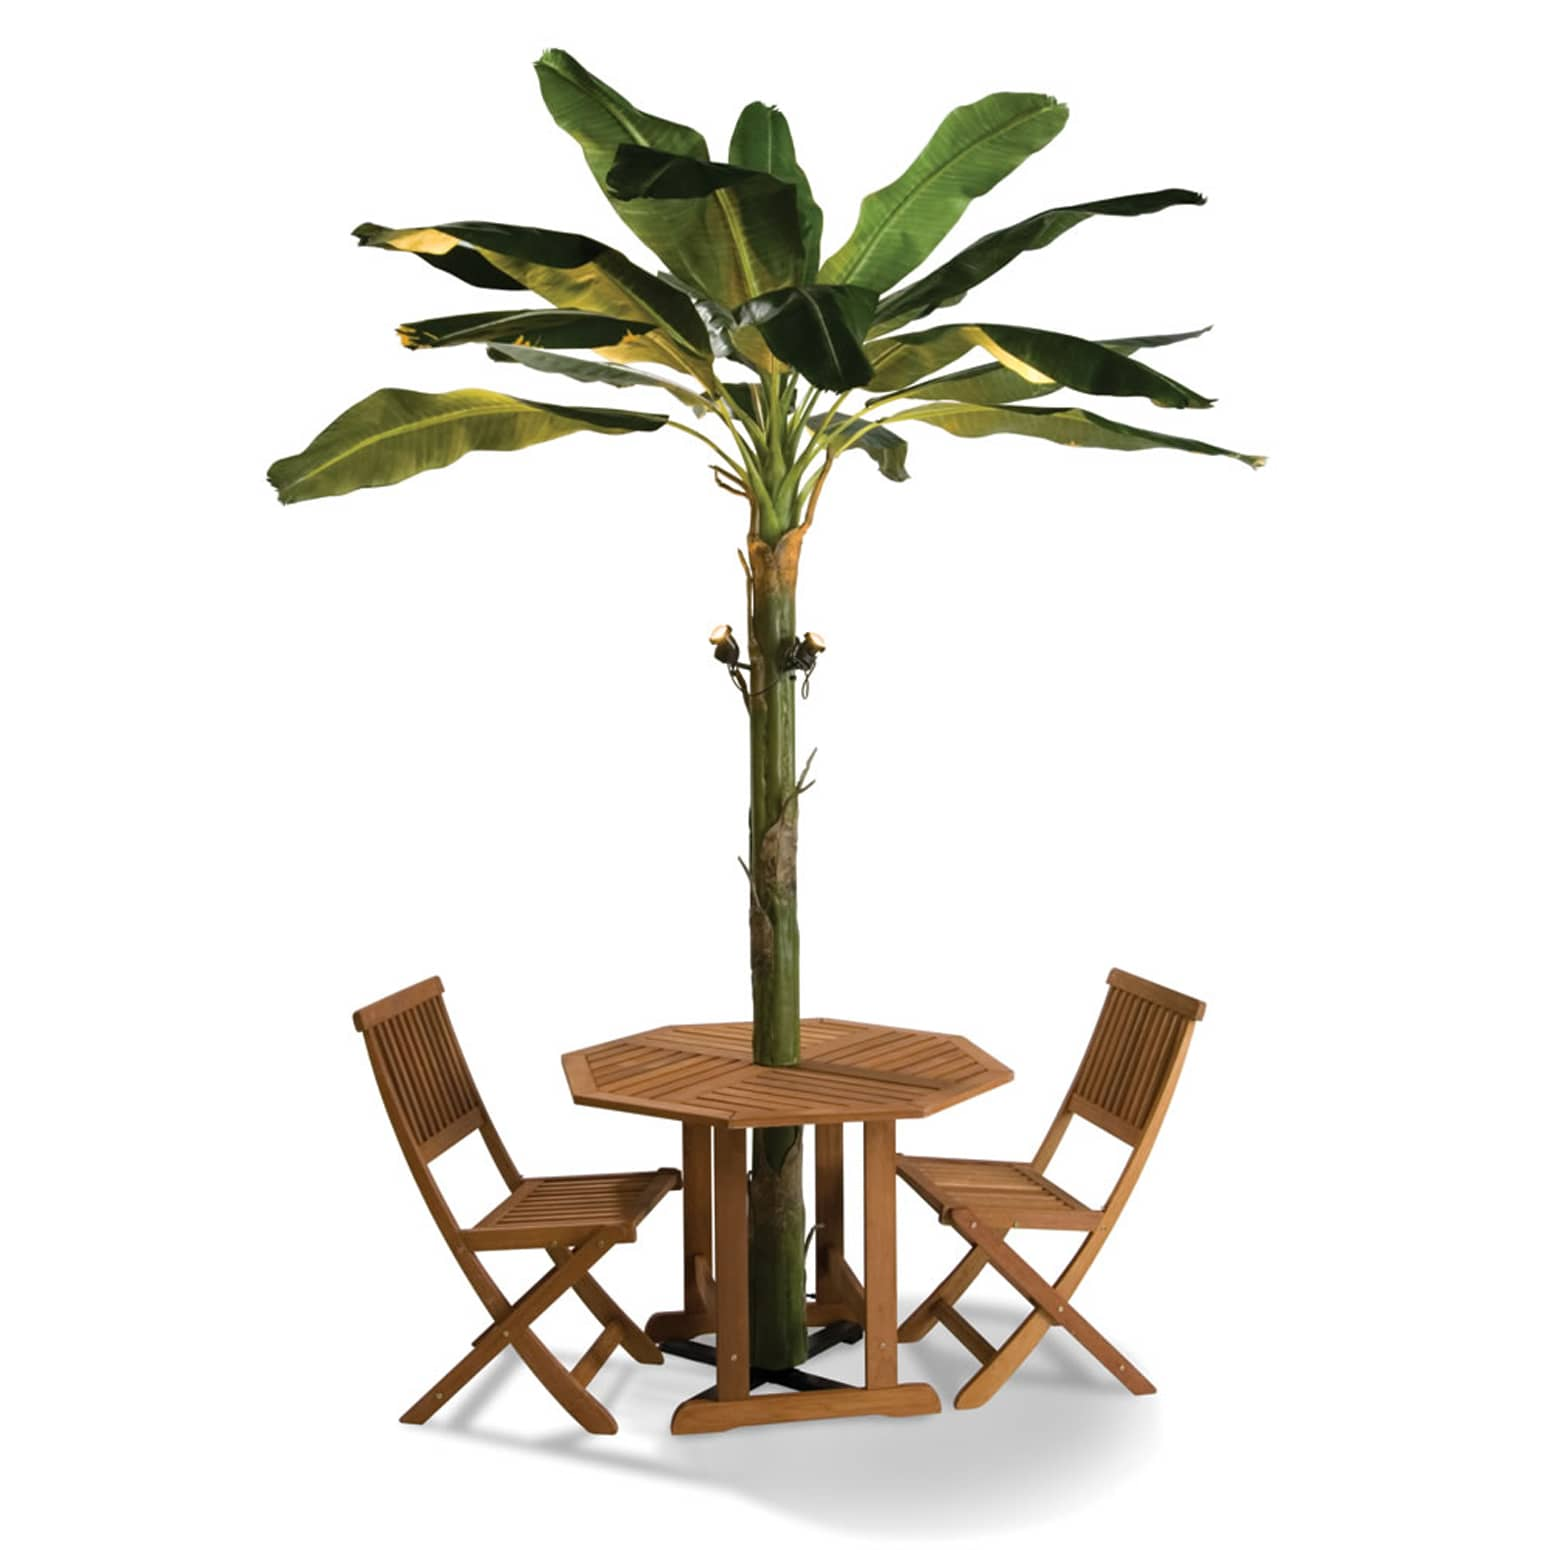 Banana Leaf Patio Umbrella Tree The Green Head